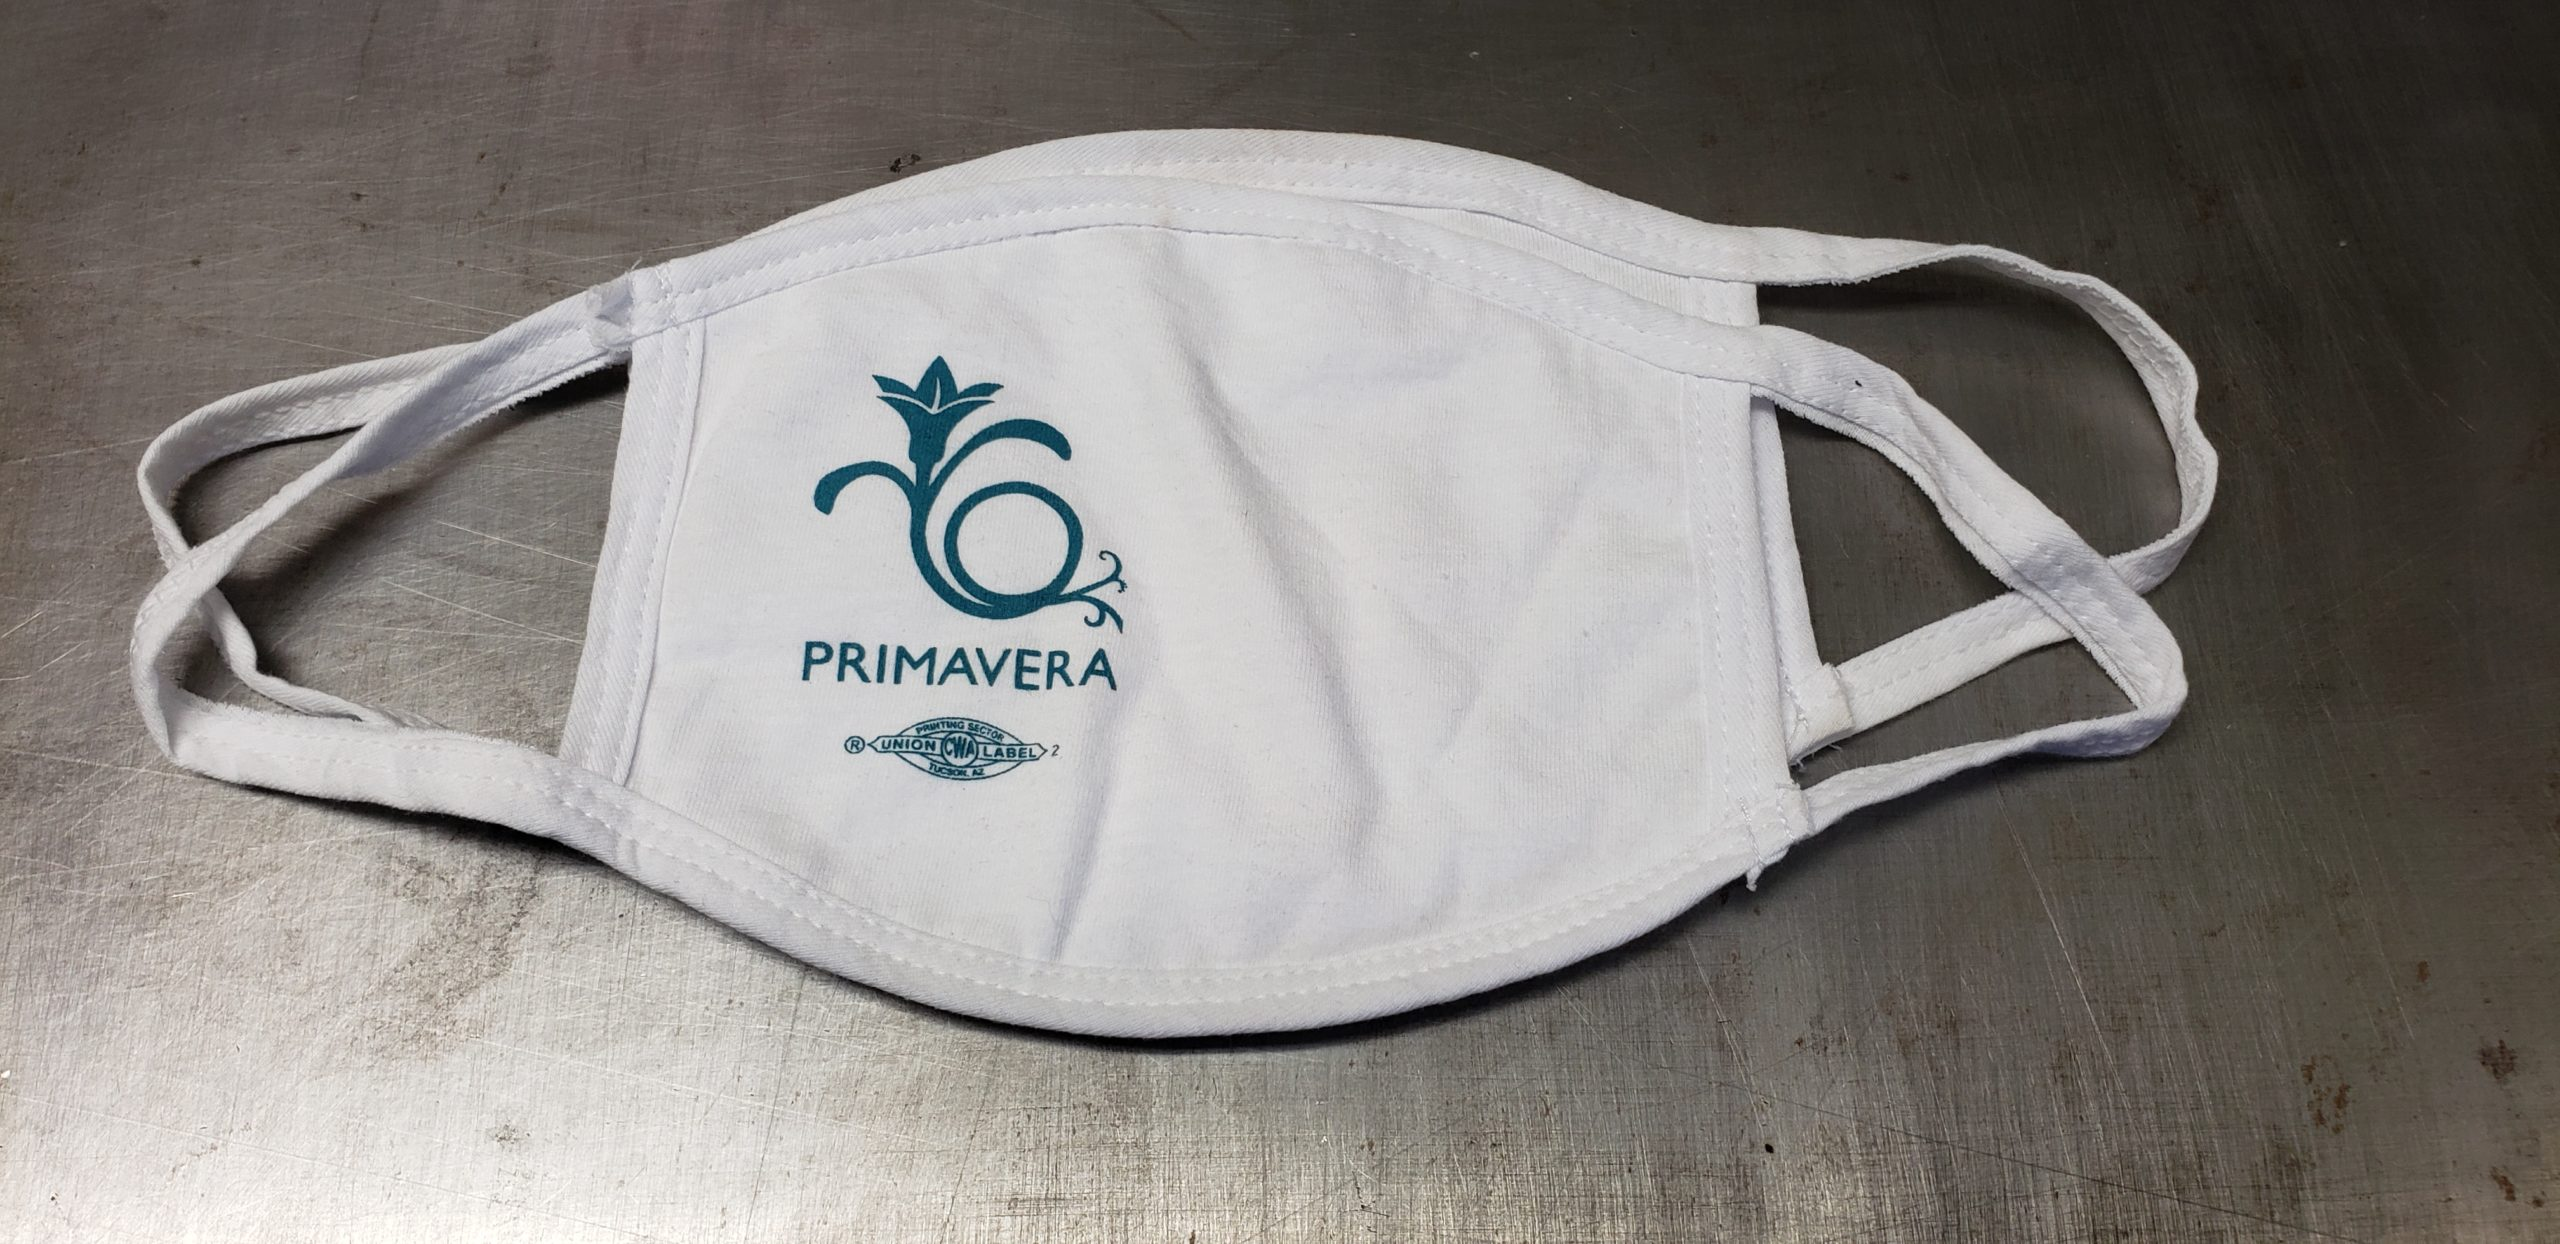 White cotton face mask with union screen printed one color logo of the Primavera.